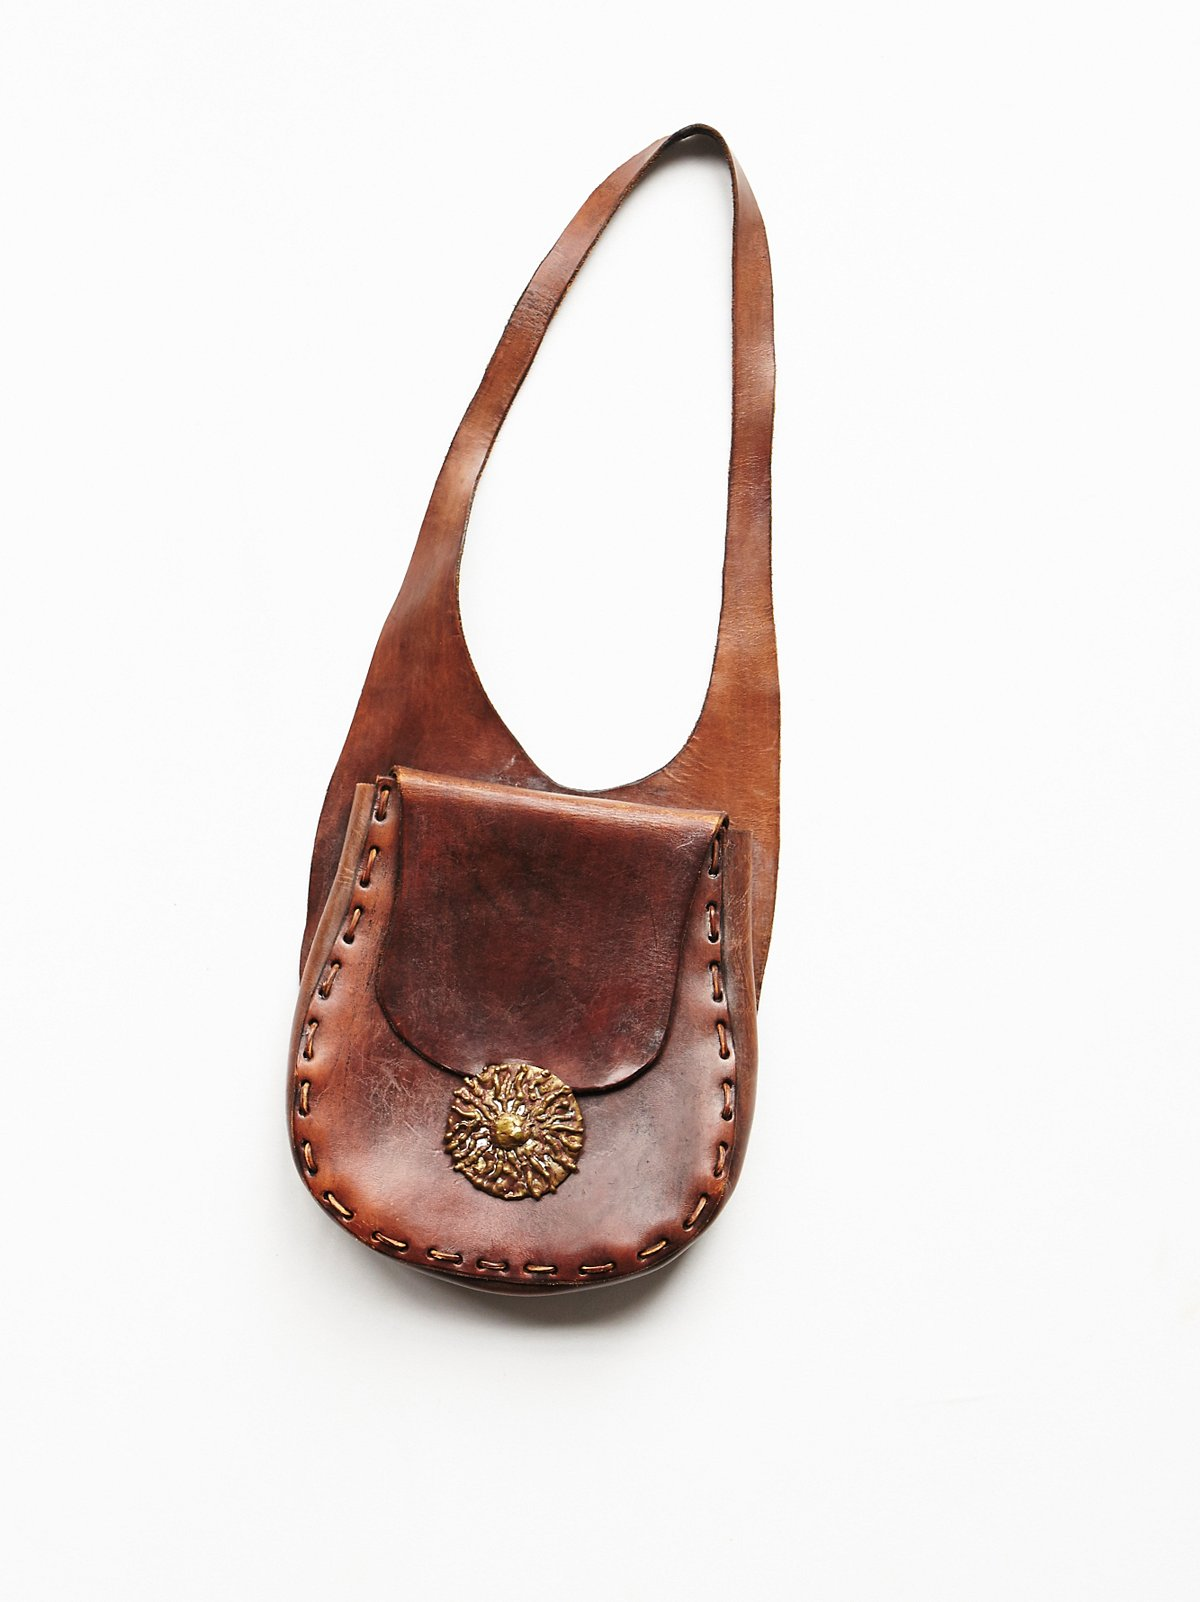 Vintage '70s Brown Leather Bag